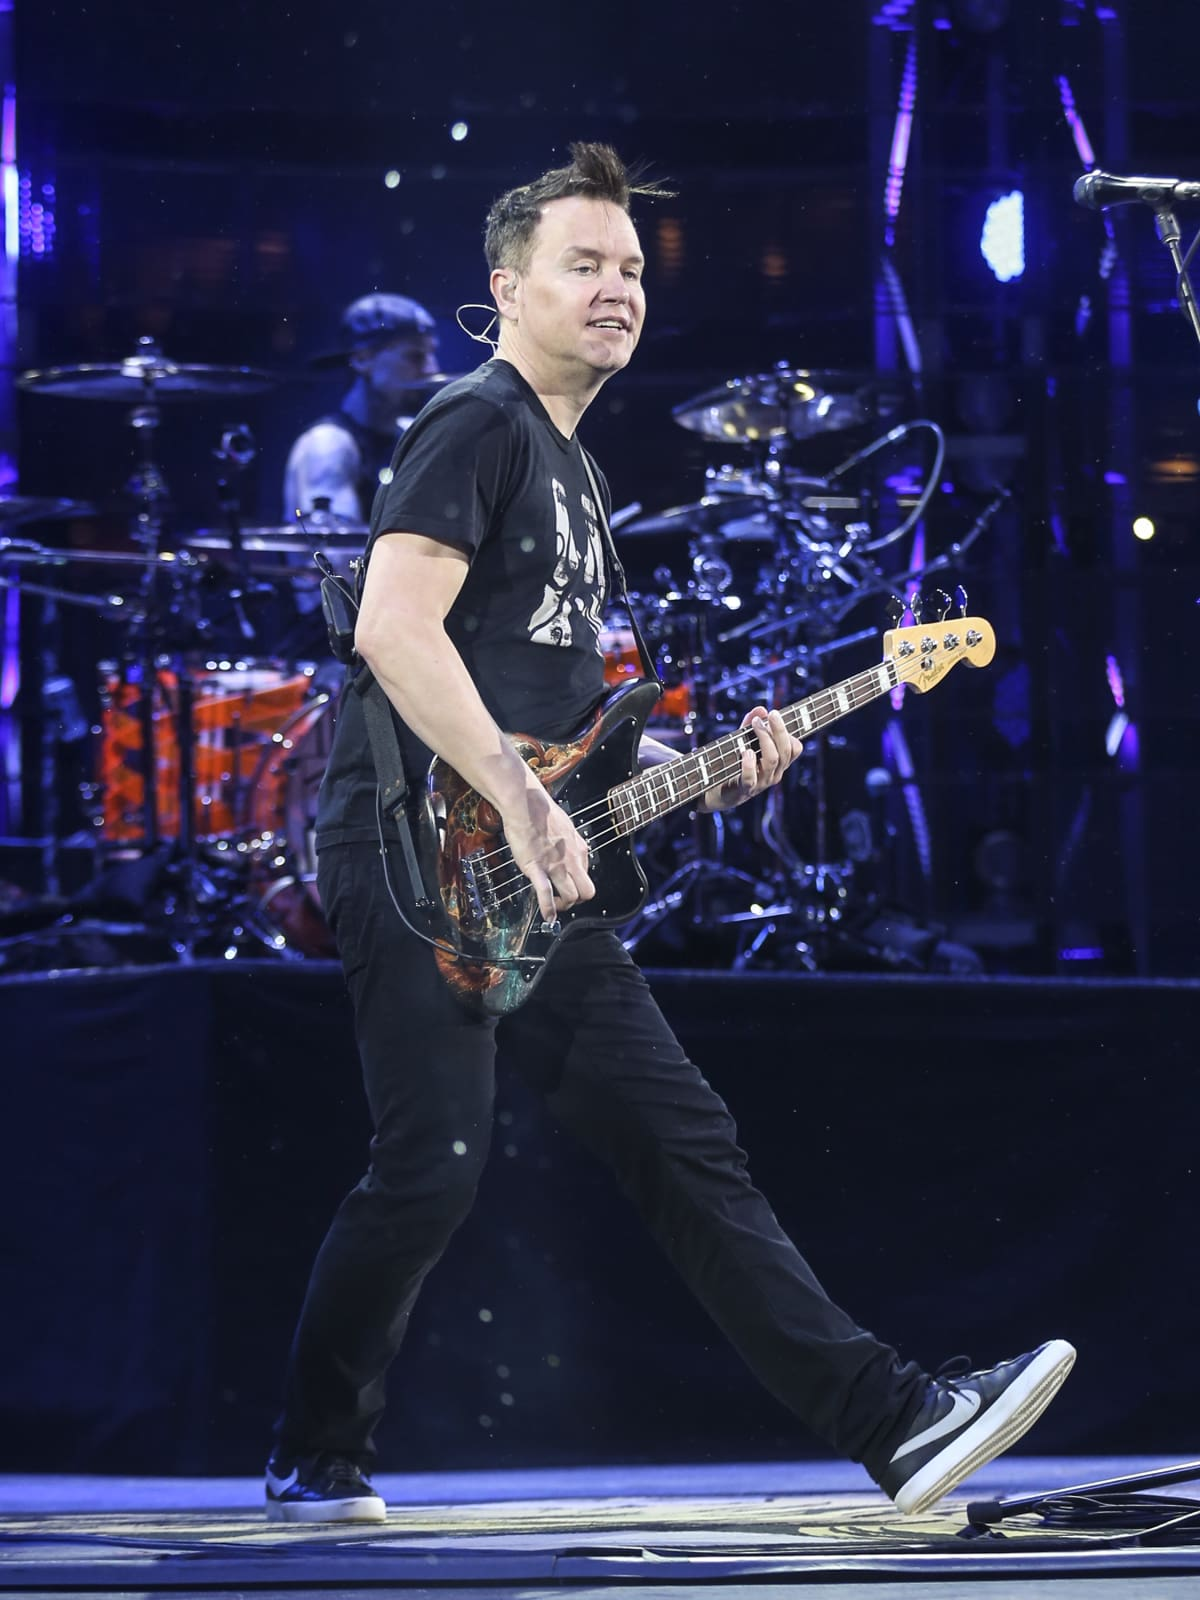 Blink 182 at RodeoHouston Mark Hoppus